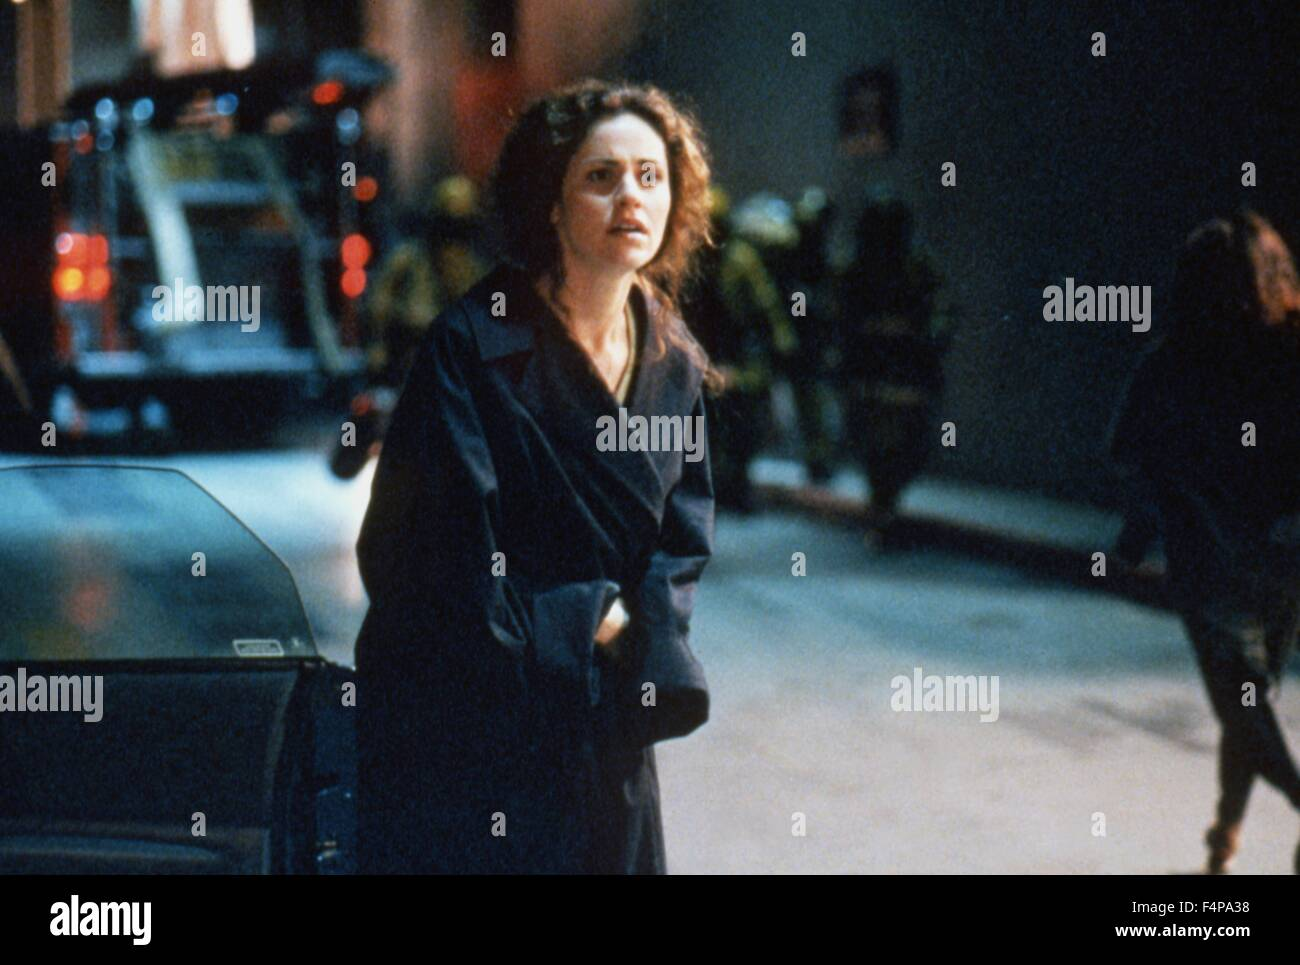 Amy Brenneman / Heat 1995 directed by Michael Mann - Stock Image